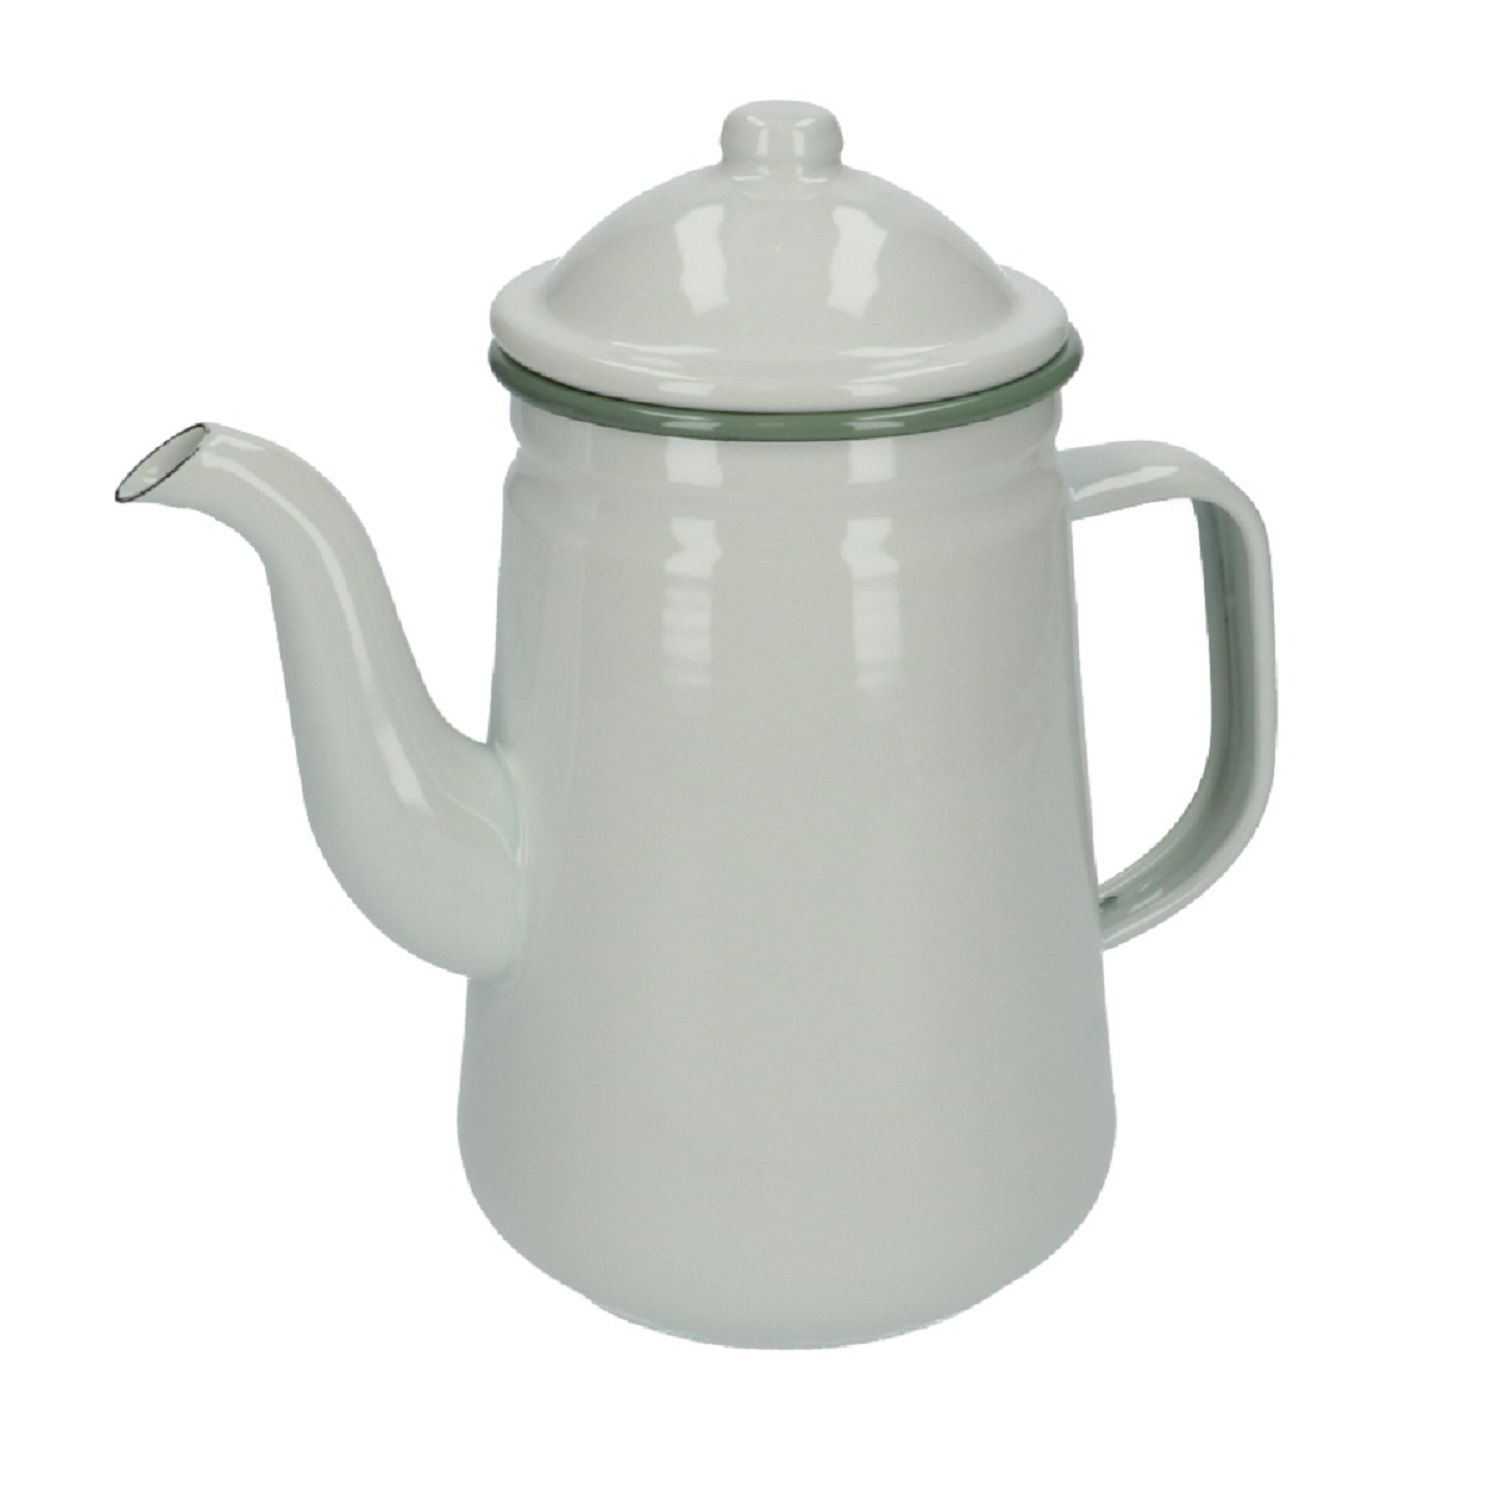 Koffiepot, emaille, wit, 1,3 L